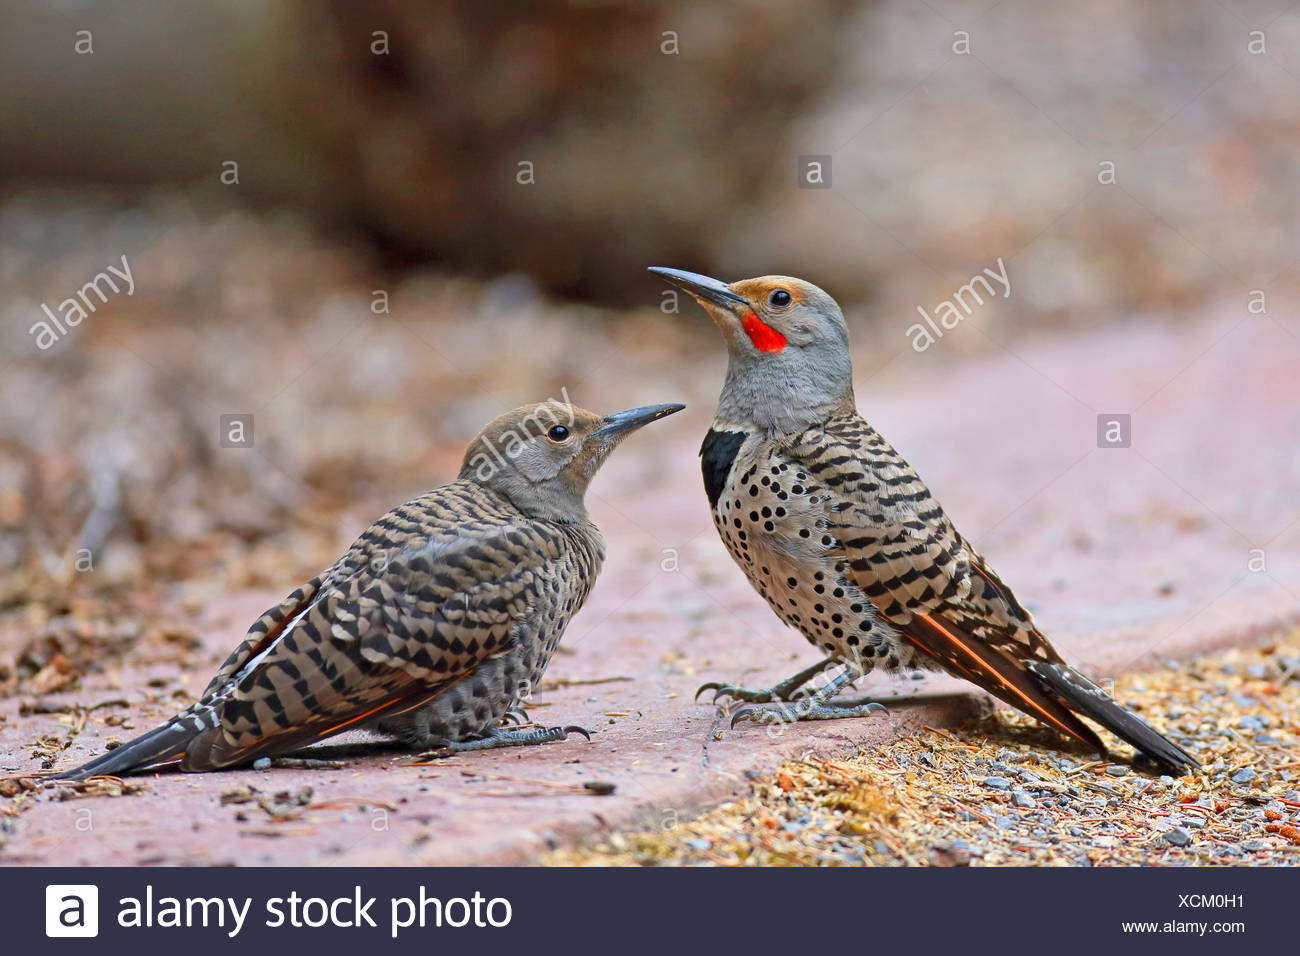 Common flicker (Colaptes auratus), adult and juvenile bird sitting on the ground, Canada, Alberta, Banff National Park - Stock Image